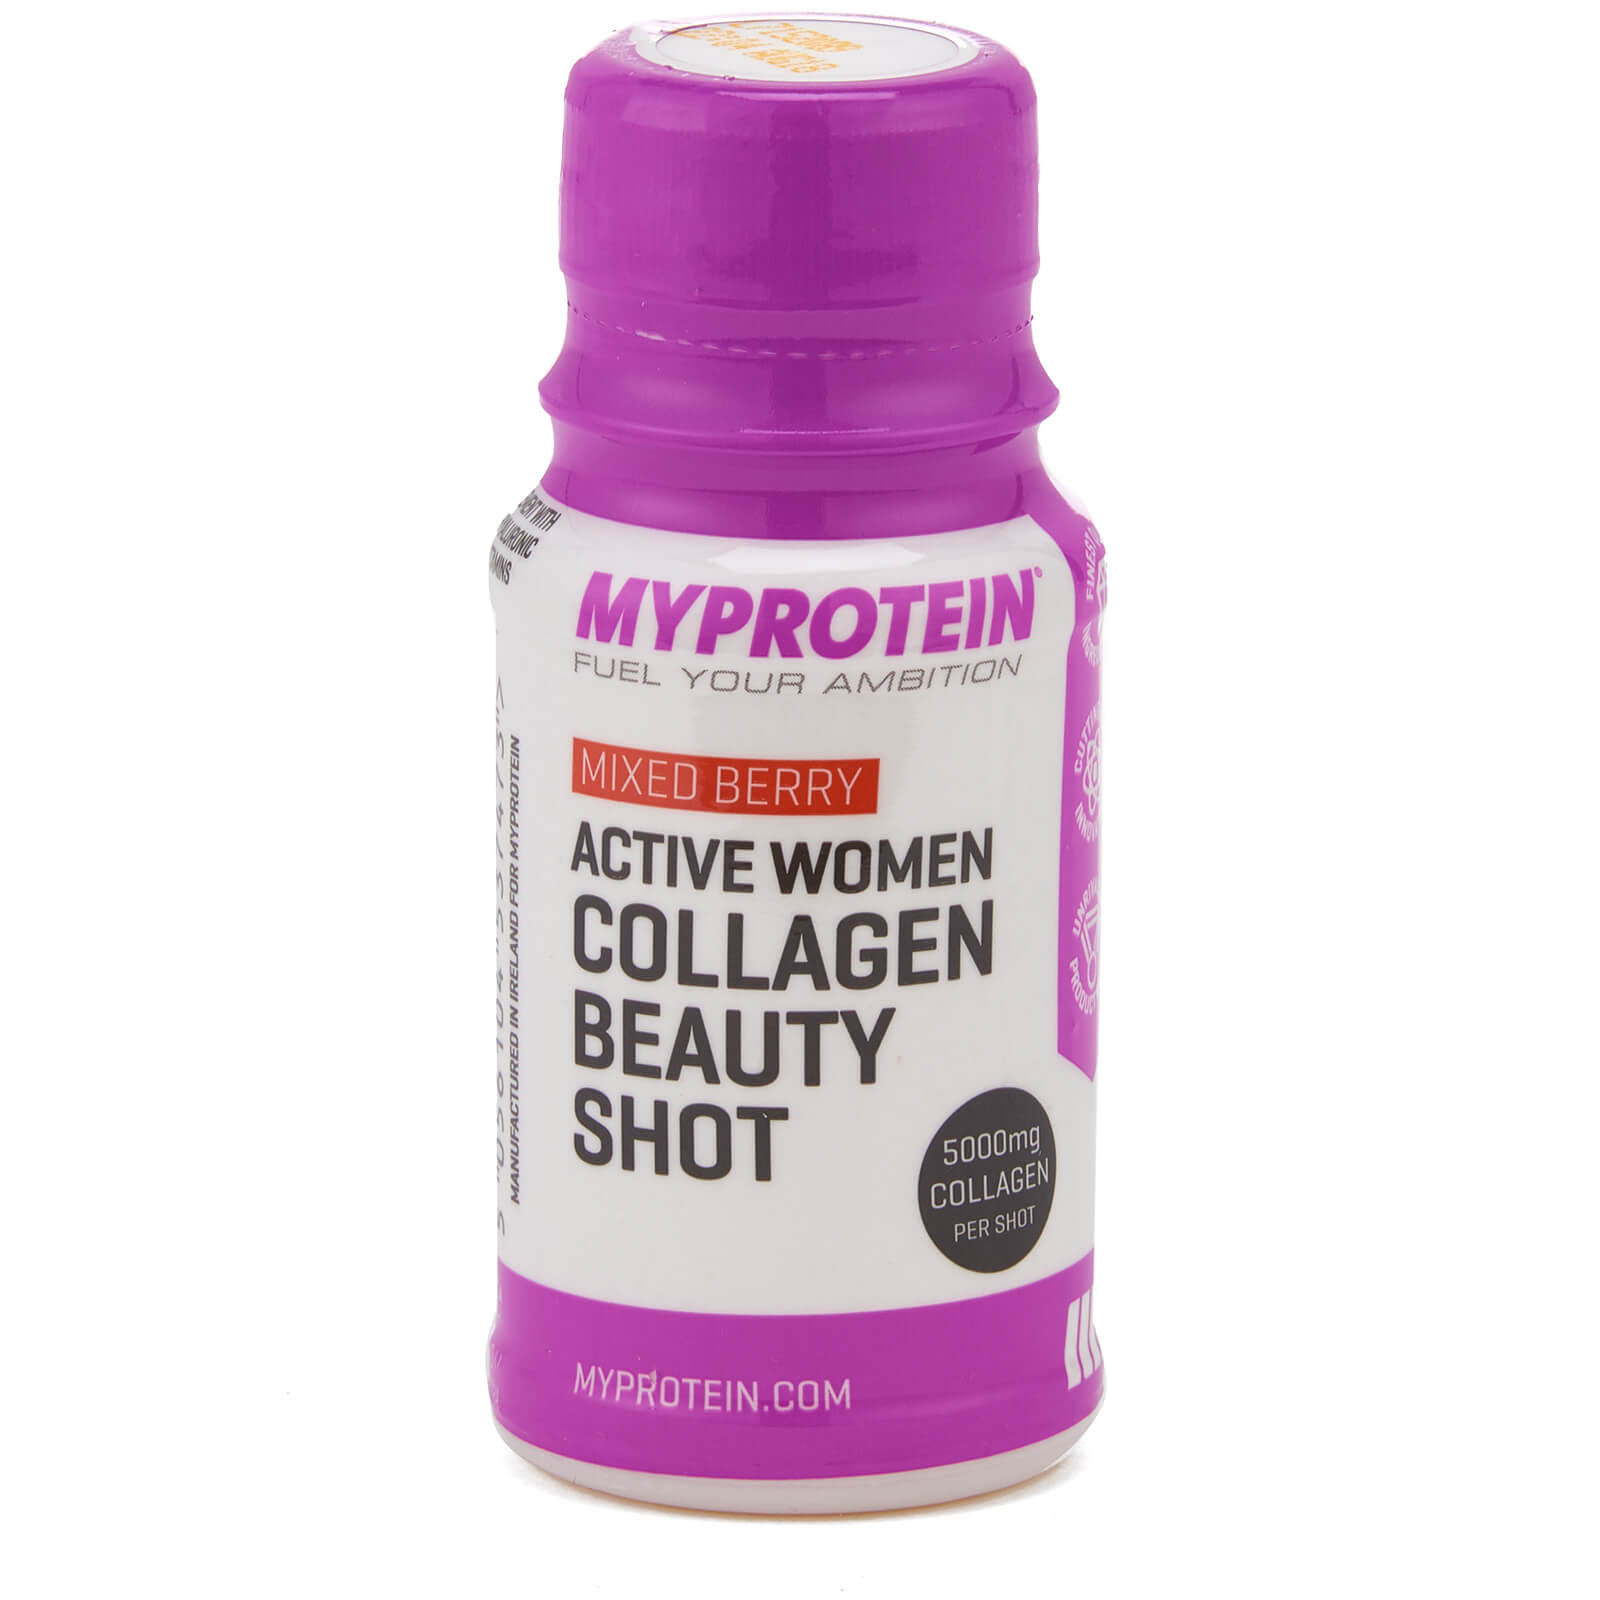 Active Women Collagen Beauty Shot (Sample) 60ml, Mixed Berry